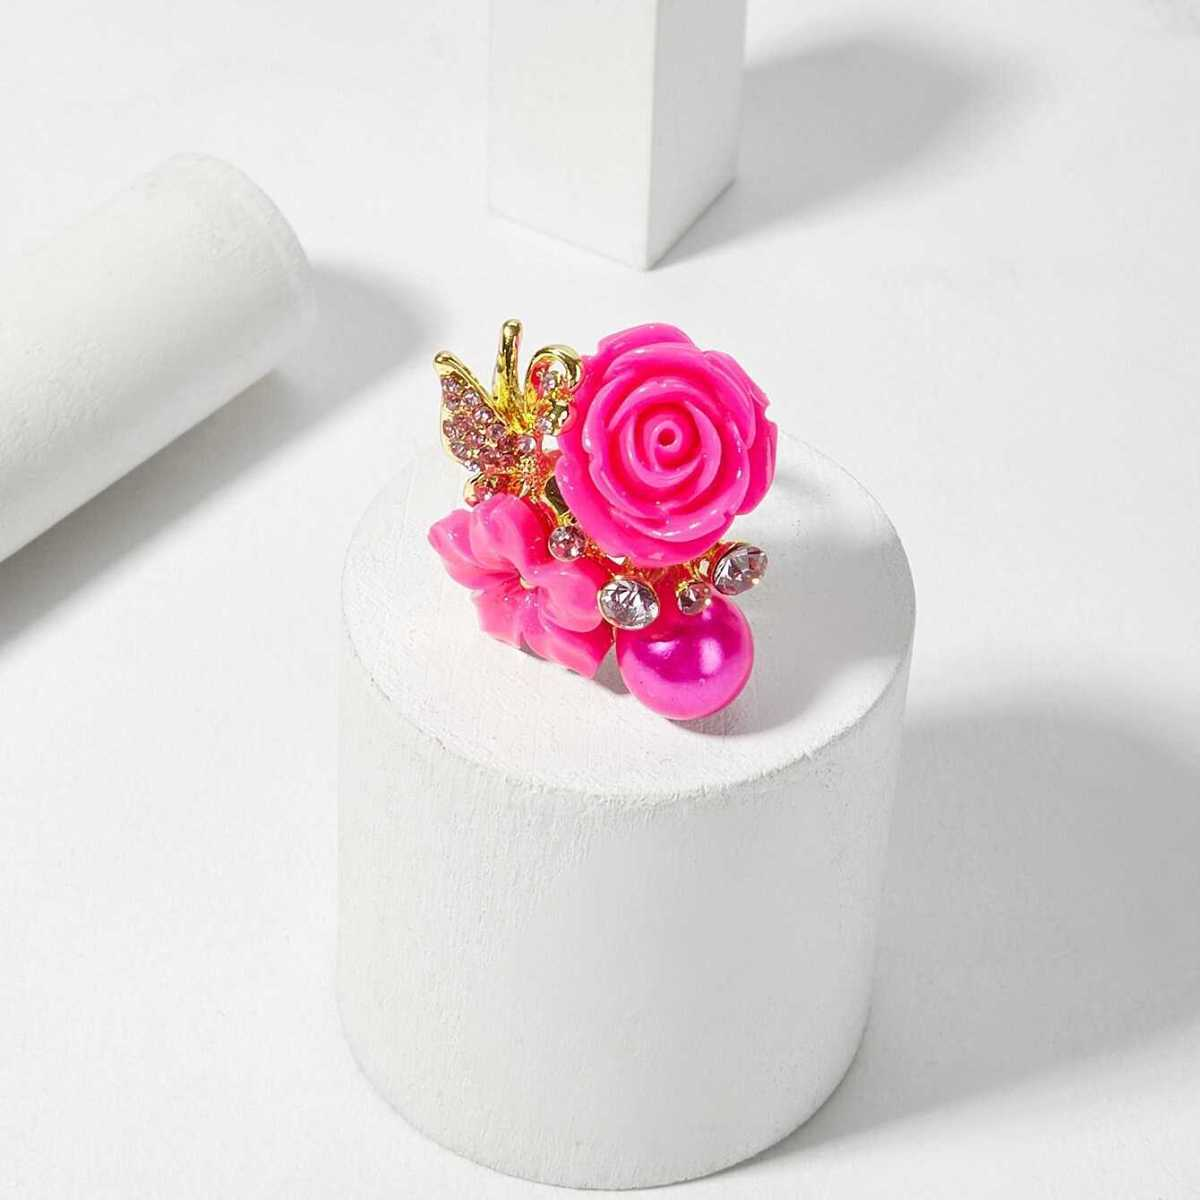 Faux Pearl & Flower Decorated Ring 1pc - Shein - GOOFASH